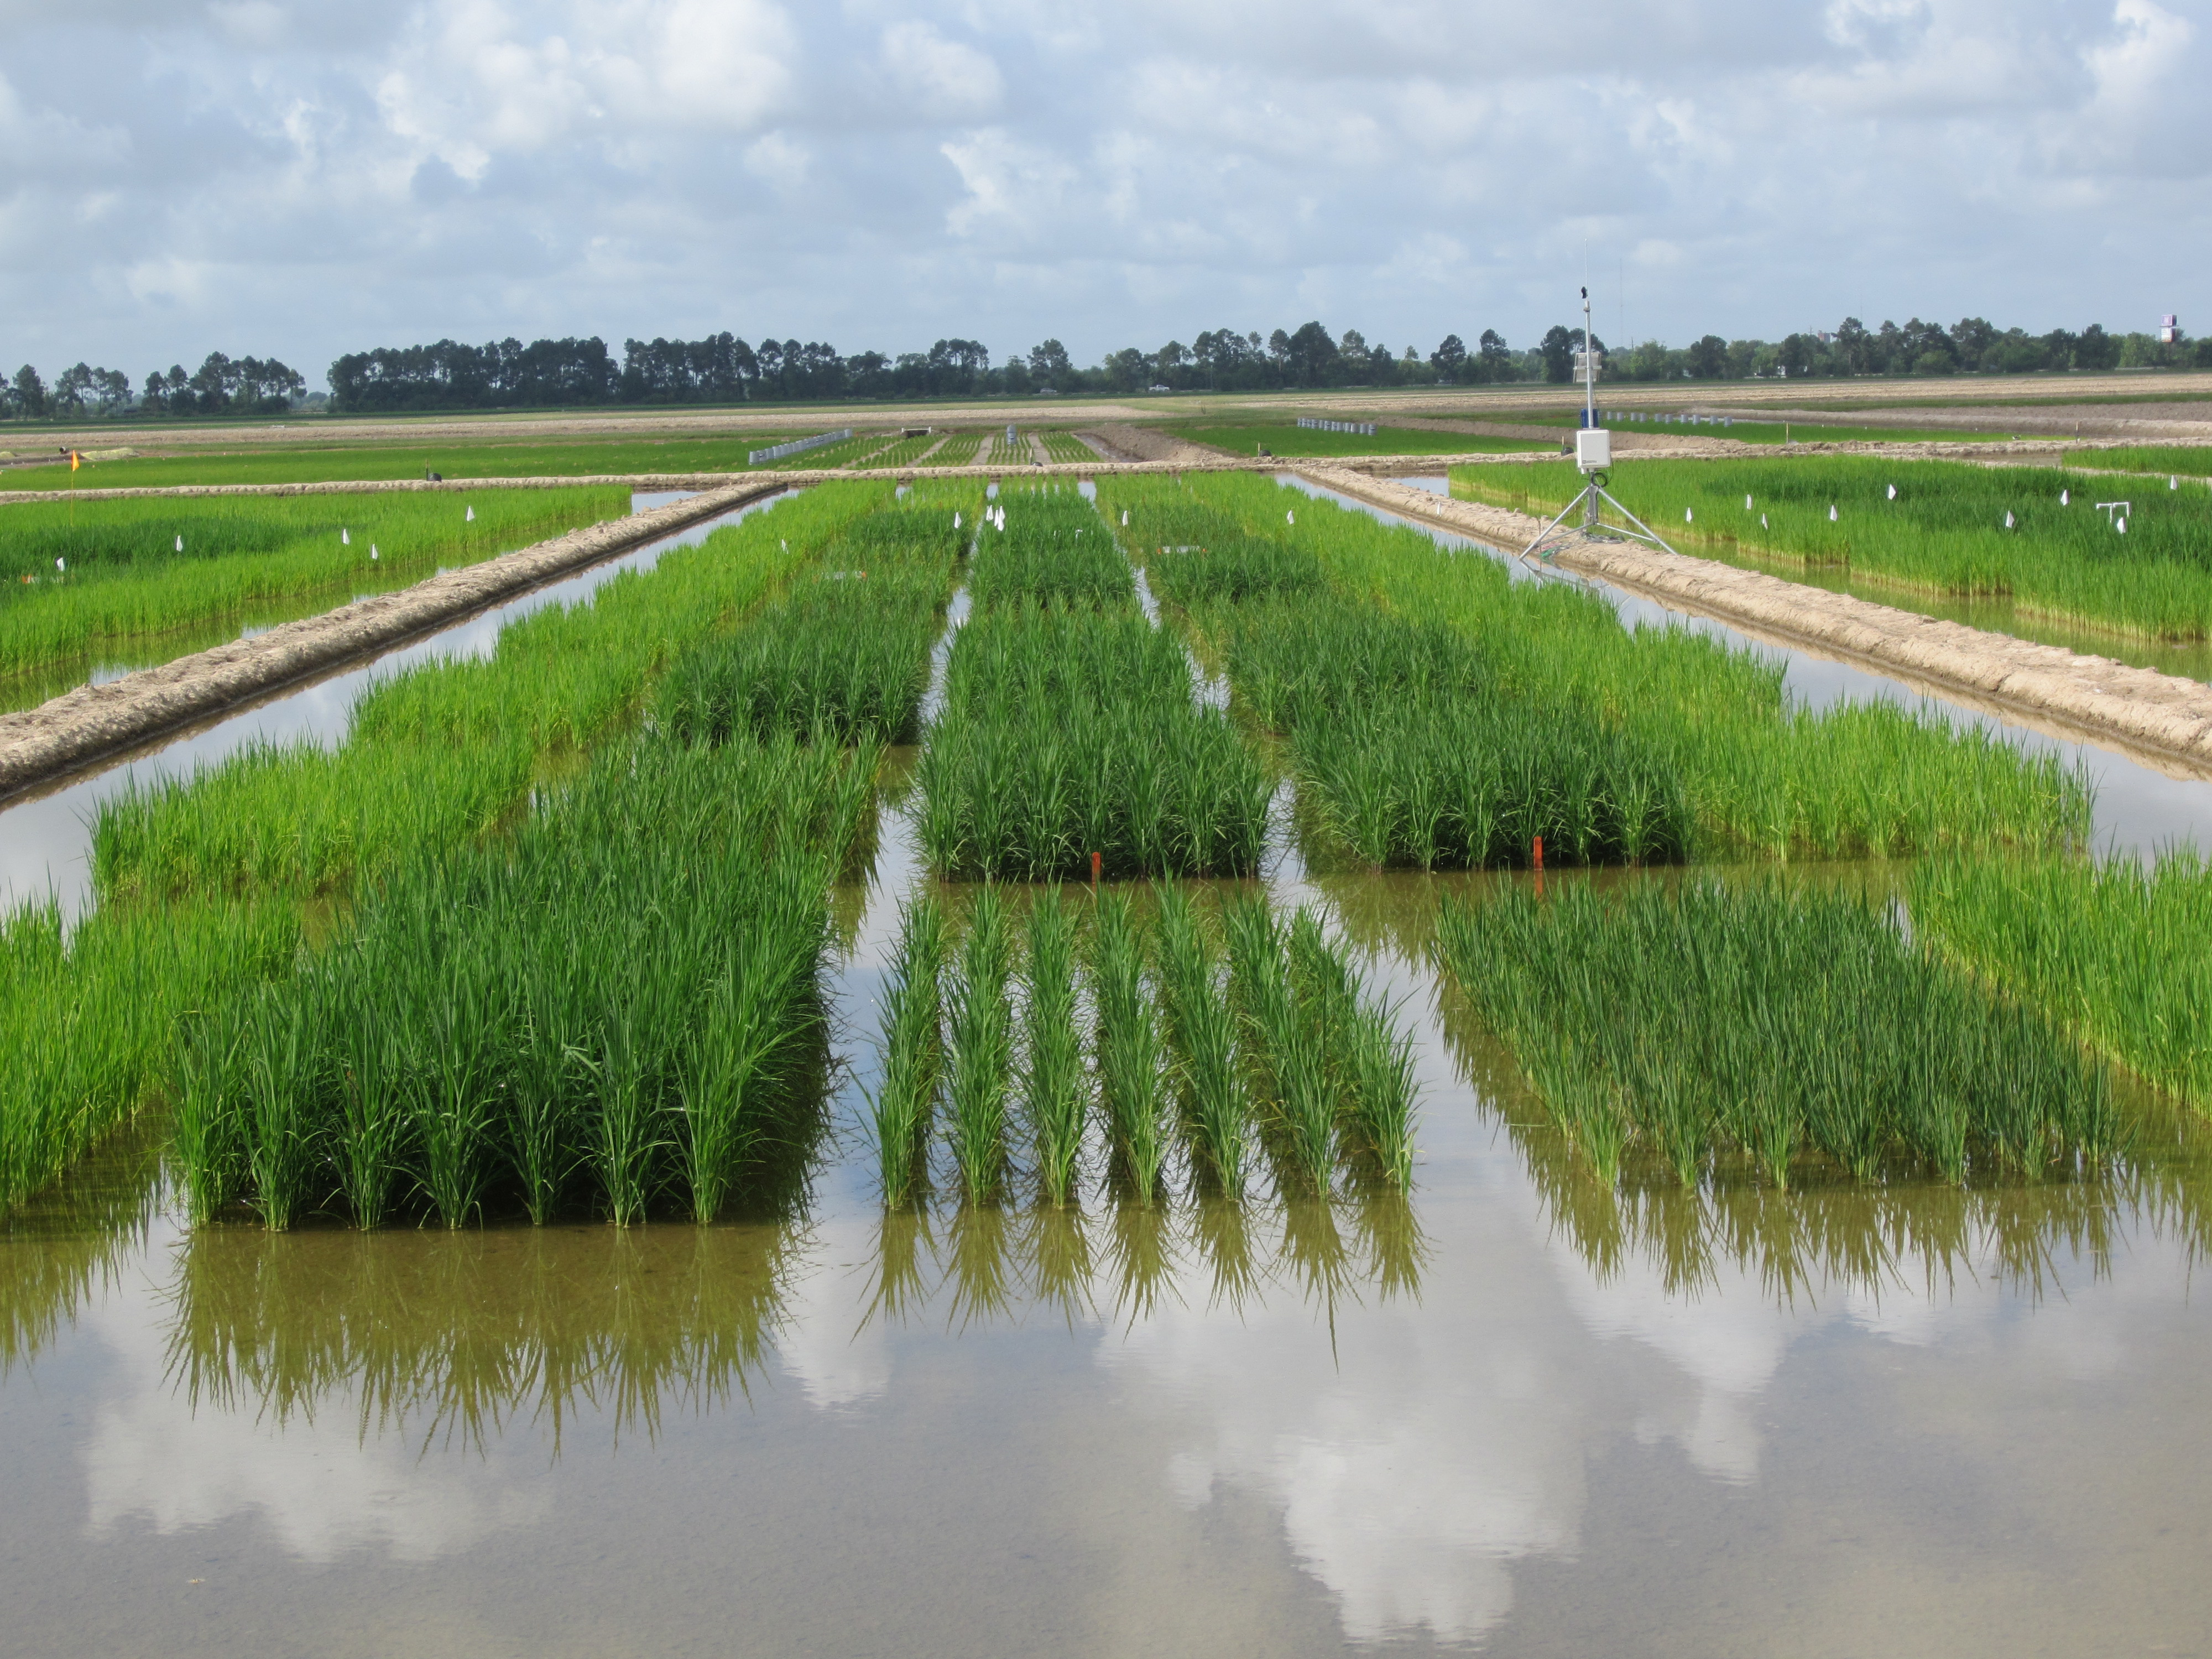 LSU AgCenter rice field day set for June 27 in Crowley